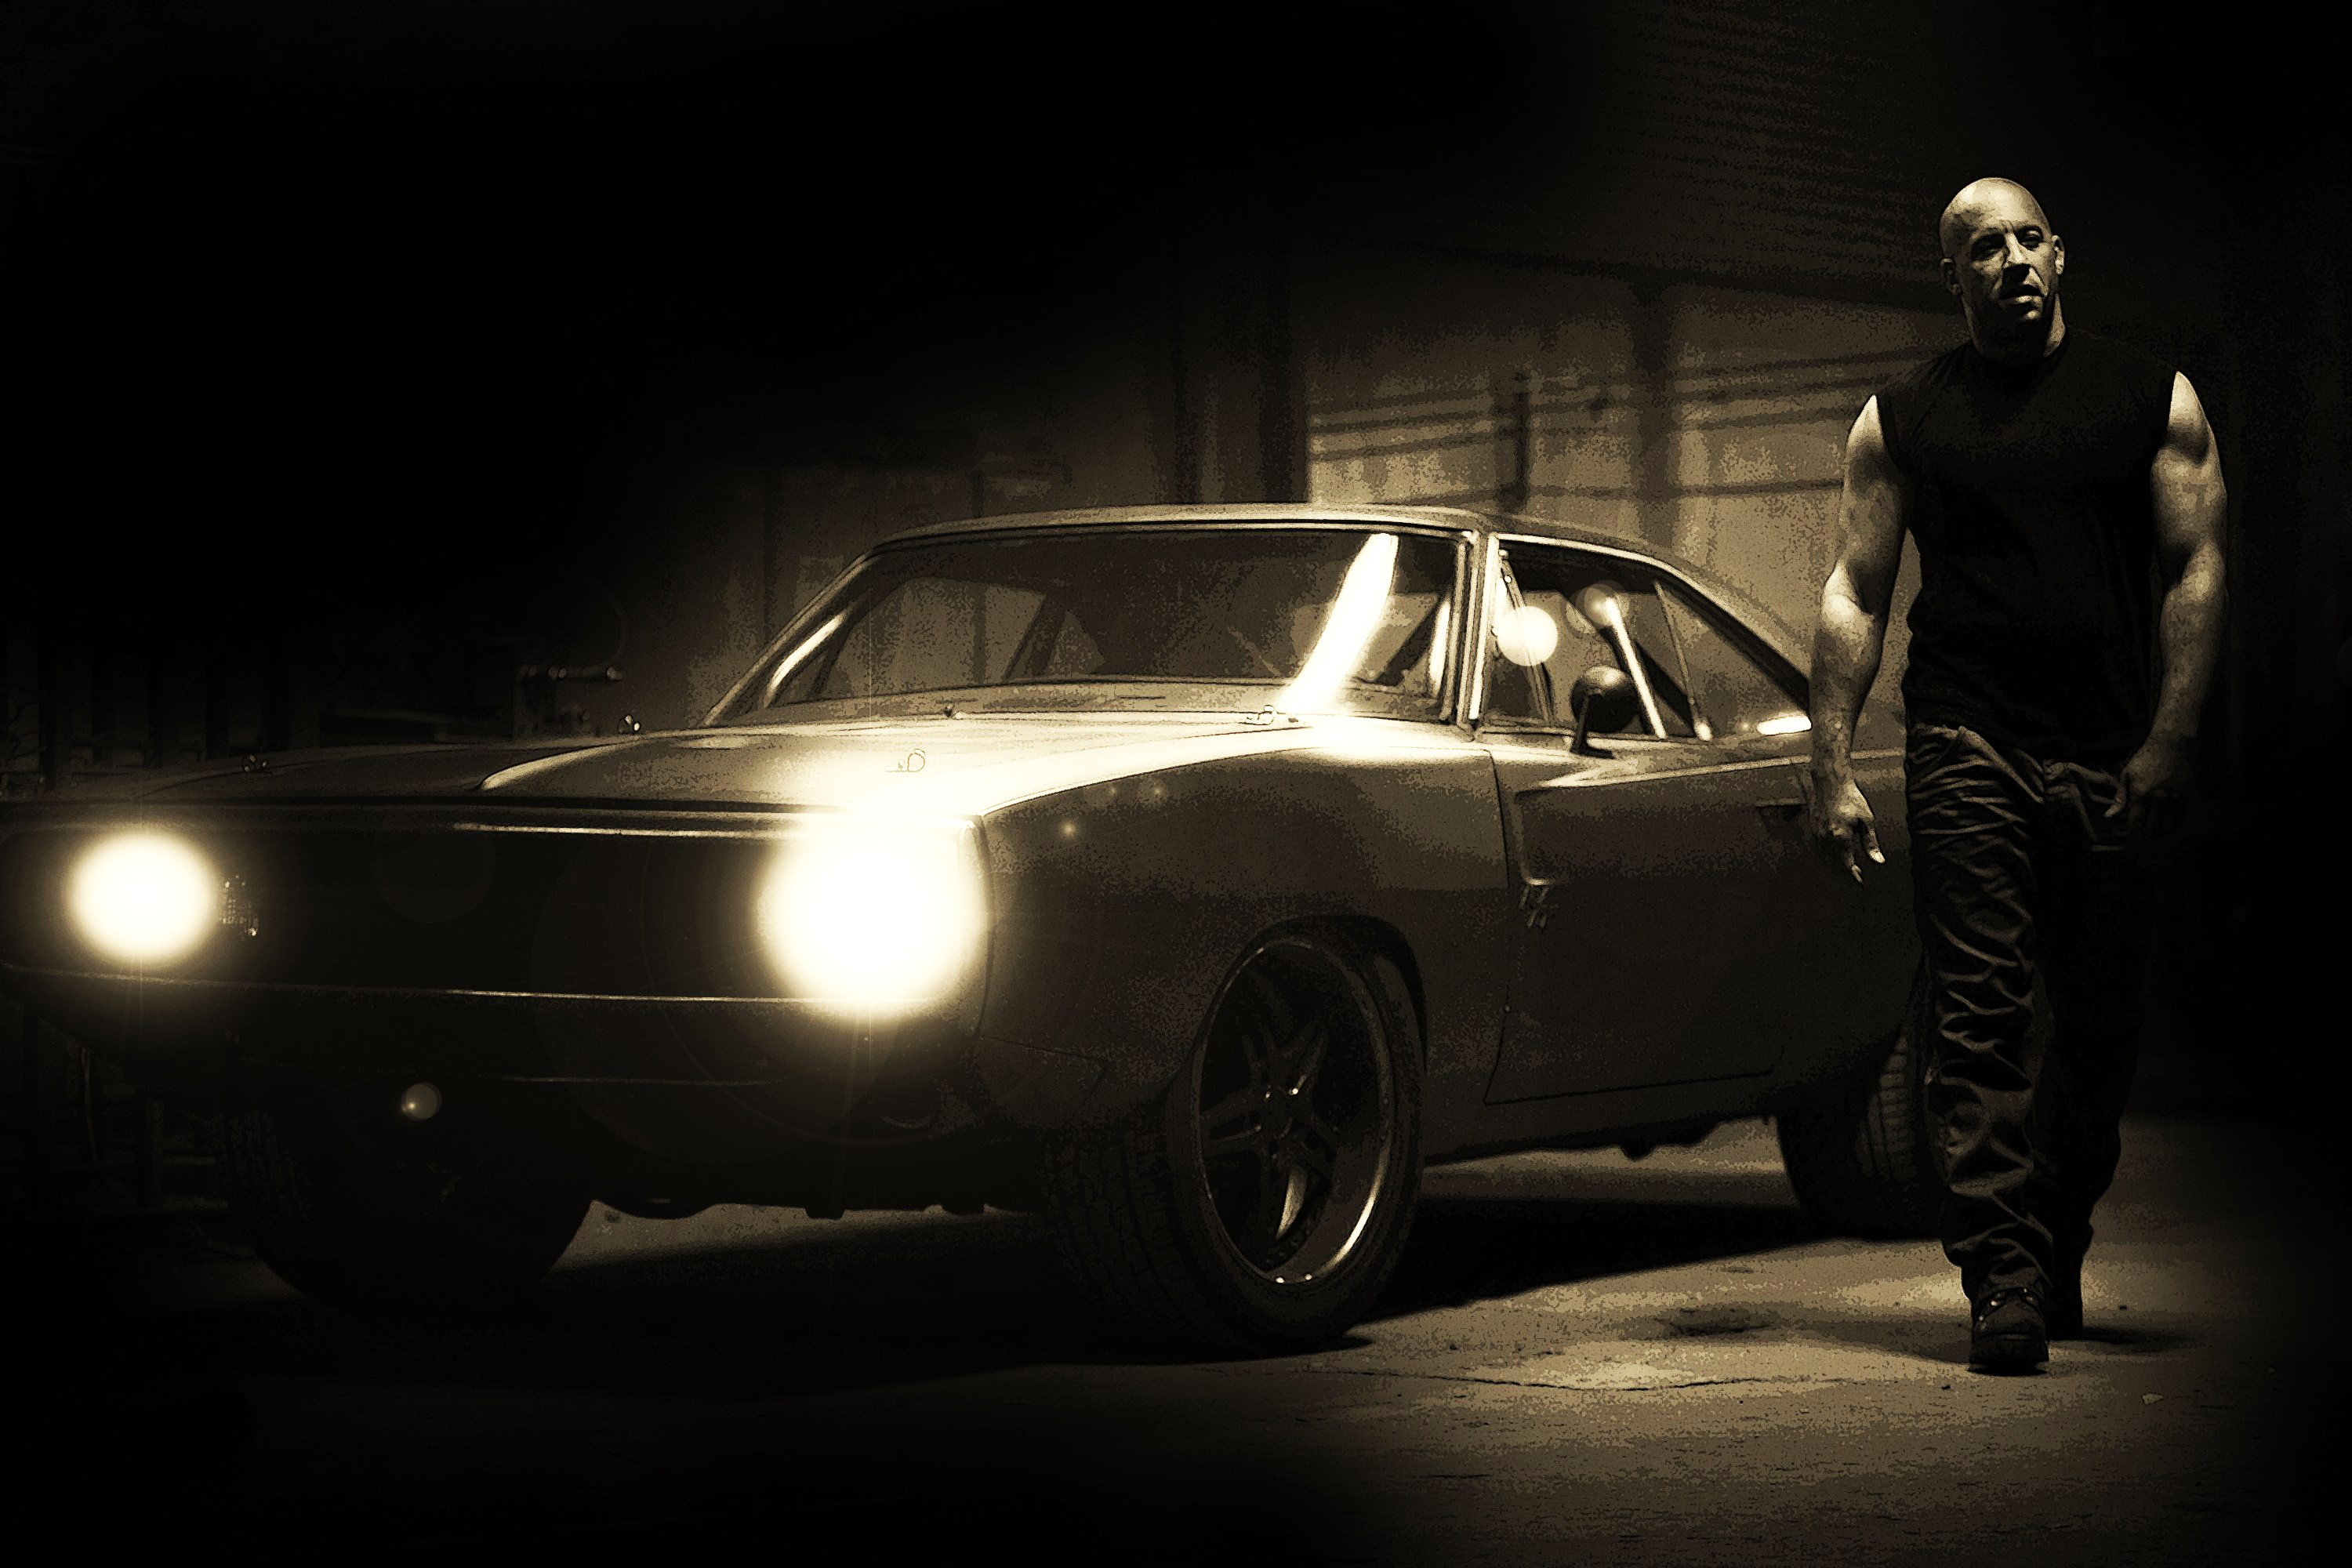 Quality Fast And Furious Vin Diesel Wallpapers hd is HD wallpaper 3000x2000